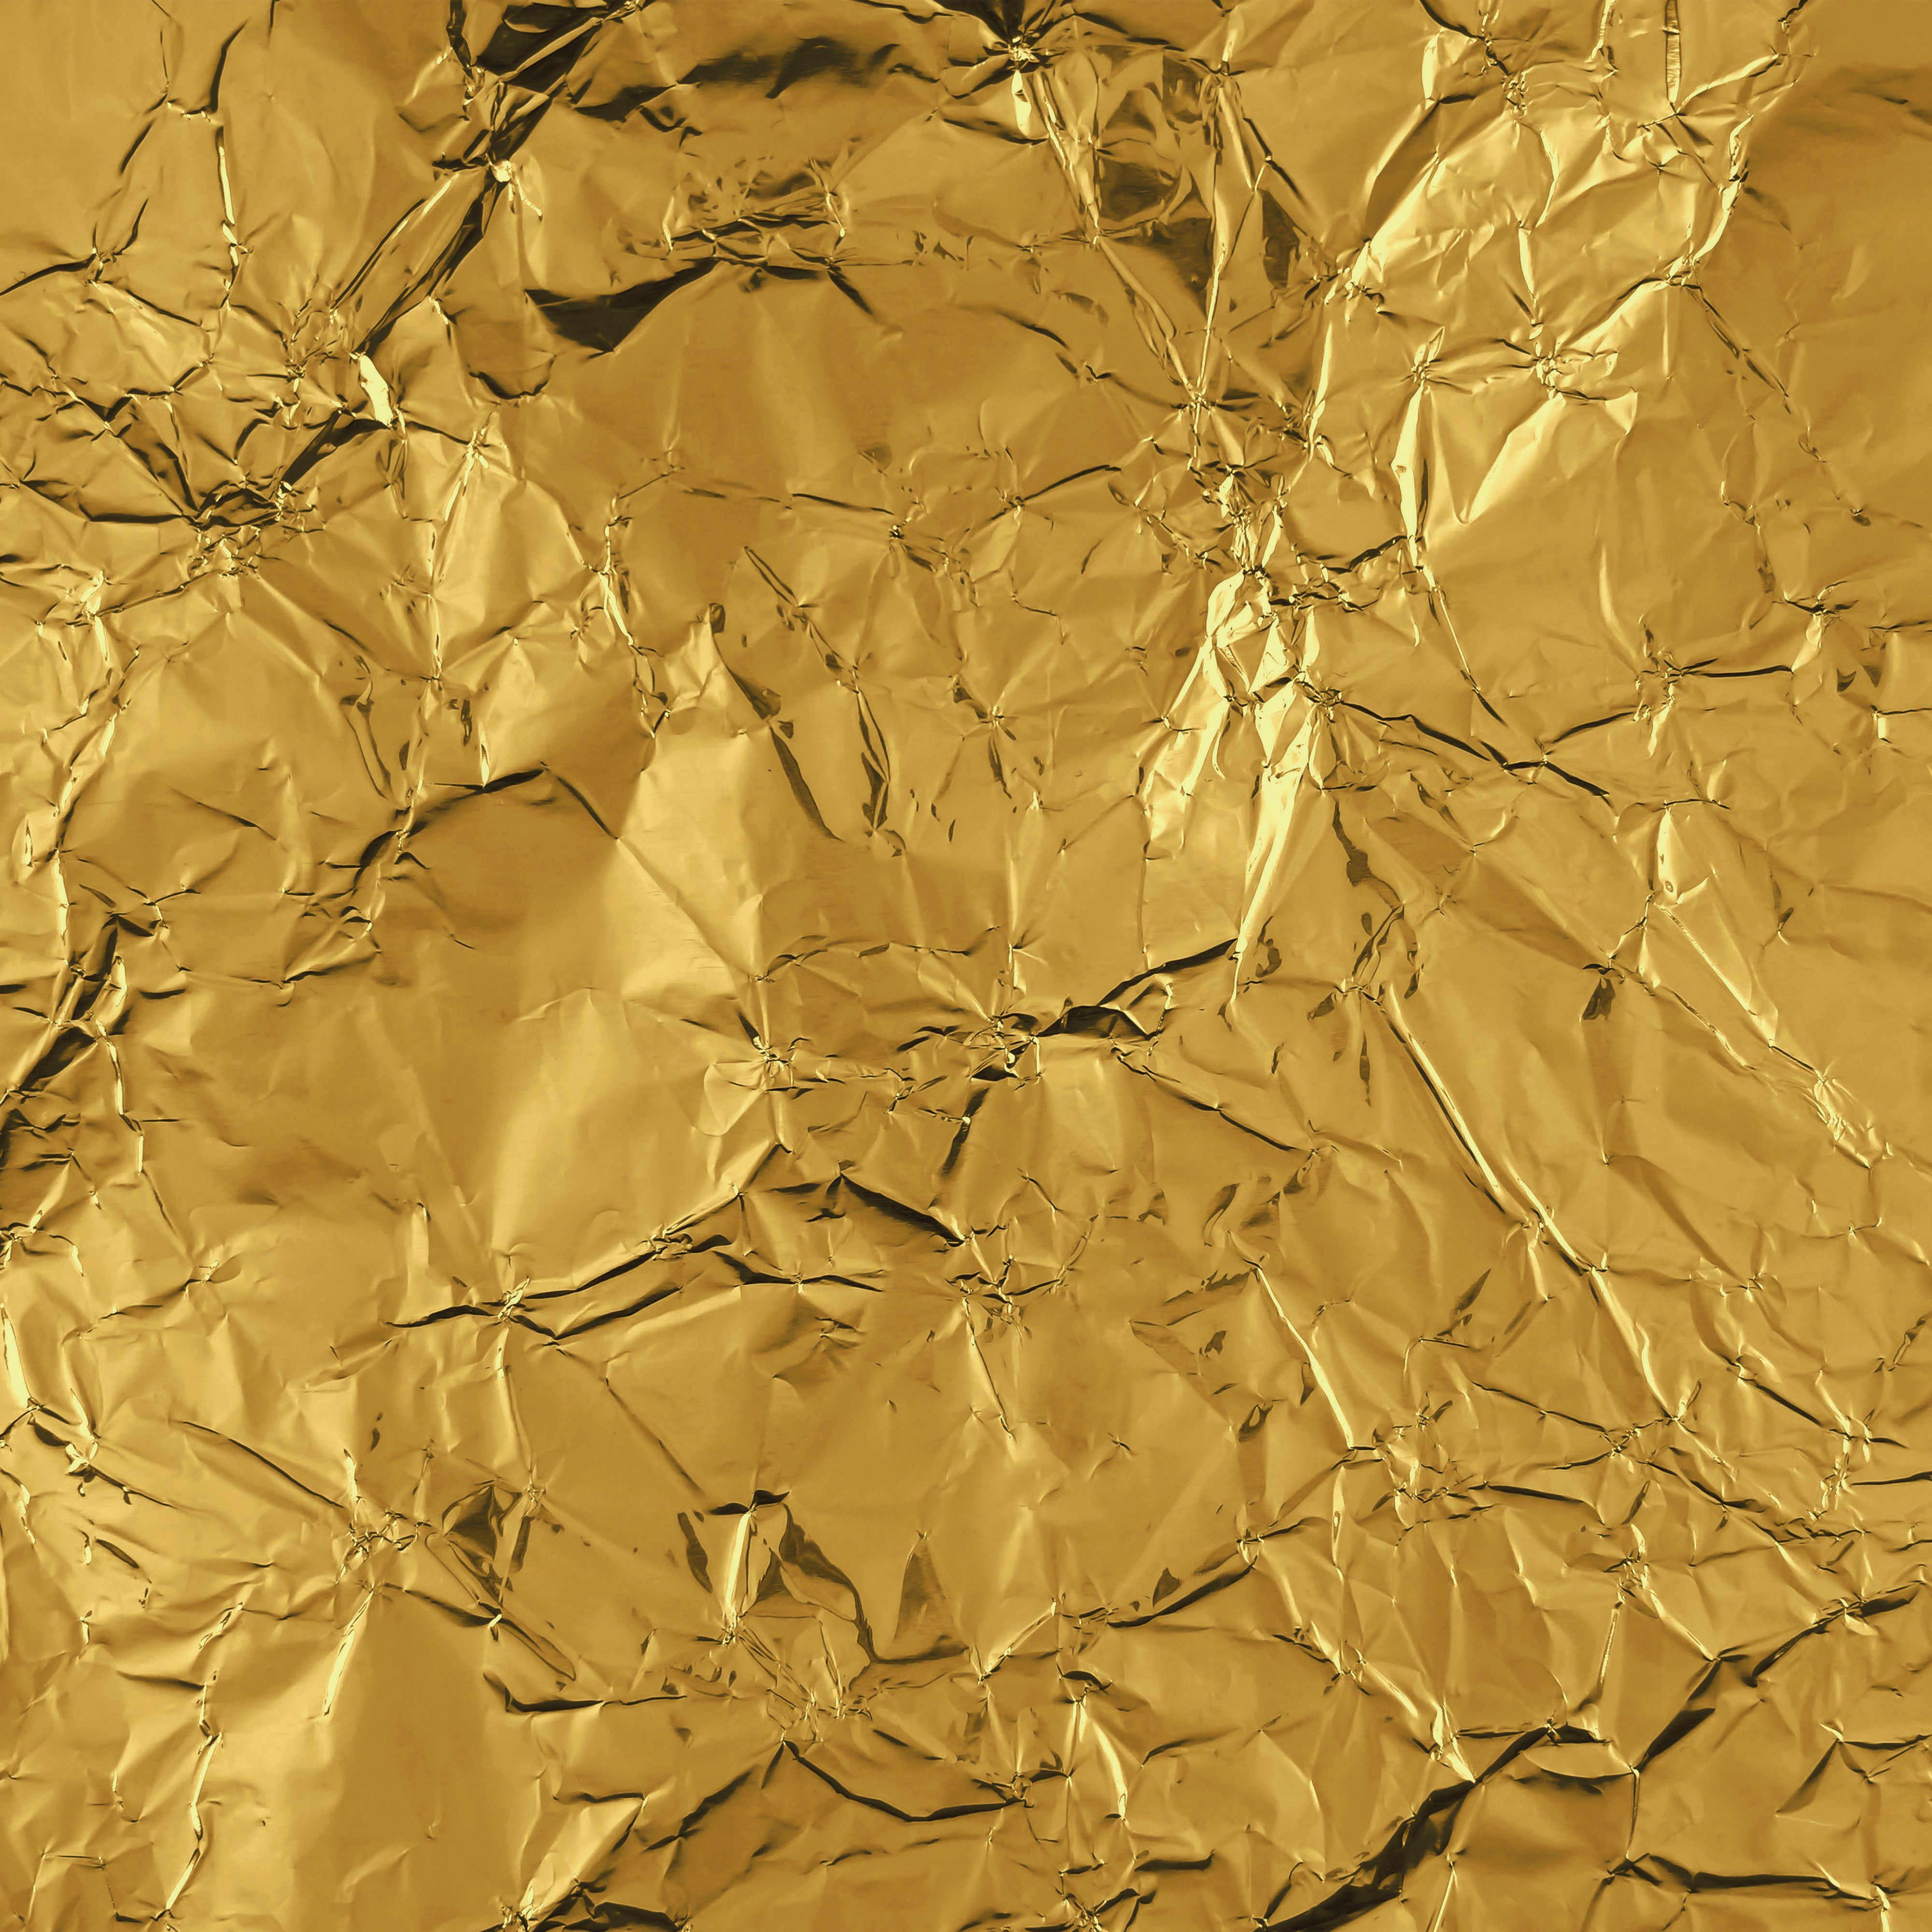 Gold Texture Background Png Free Gold Texture Background Png Transparent Images 89933 Pngio Gold Foil Texture Gold Texture Background Gold Foil Background